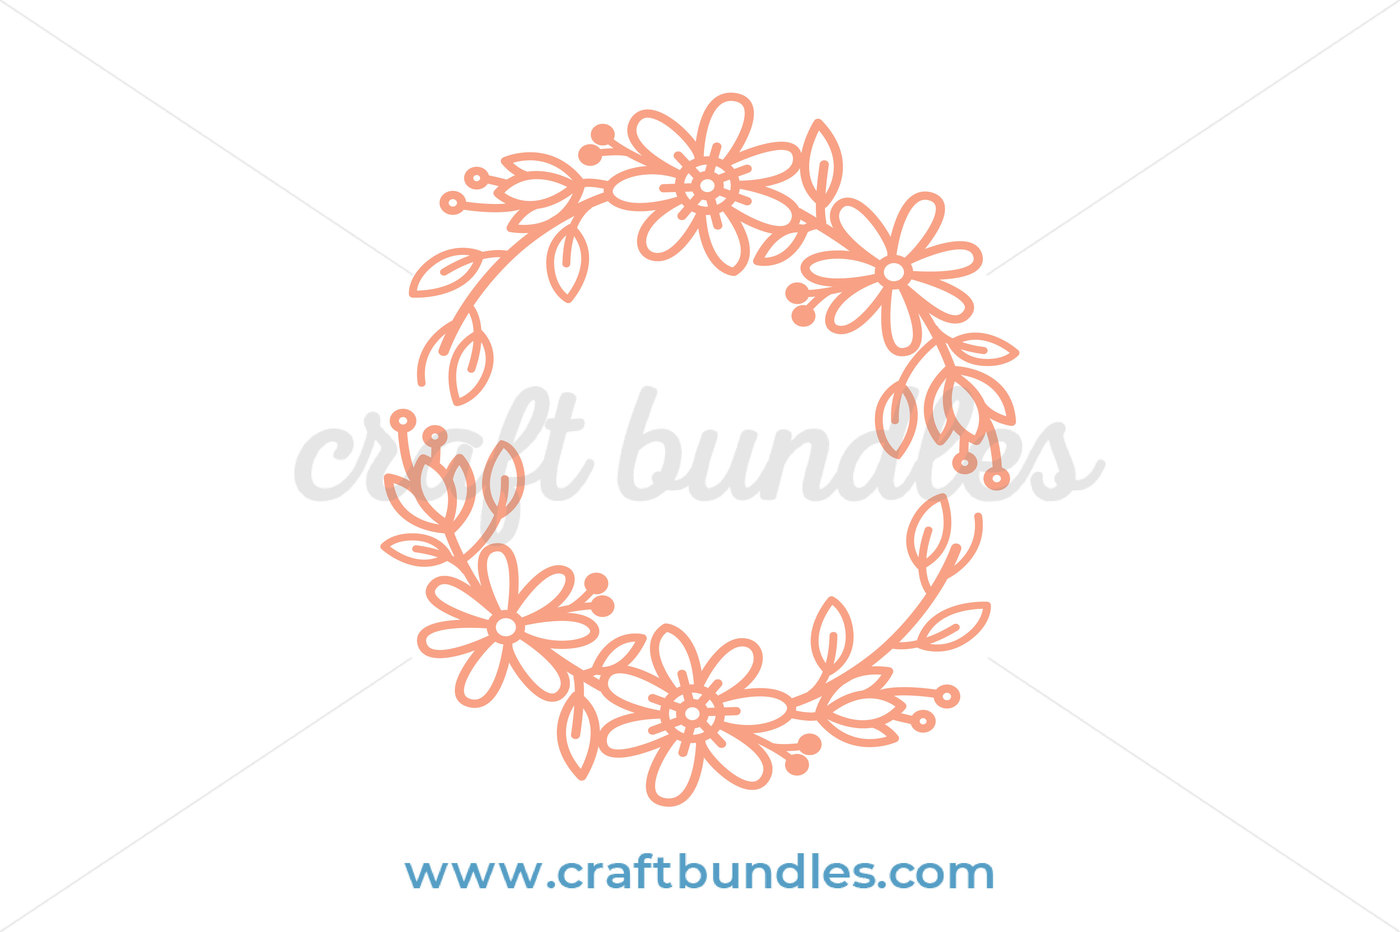 floral svg free #174, Download drawings